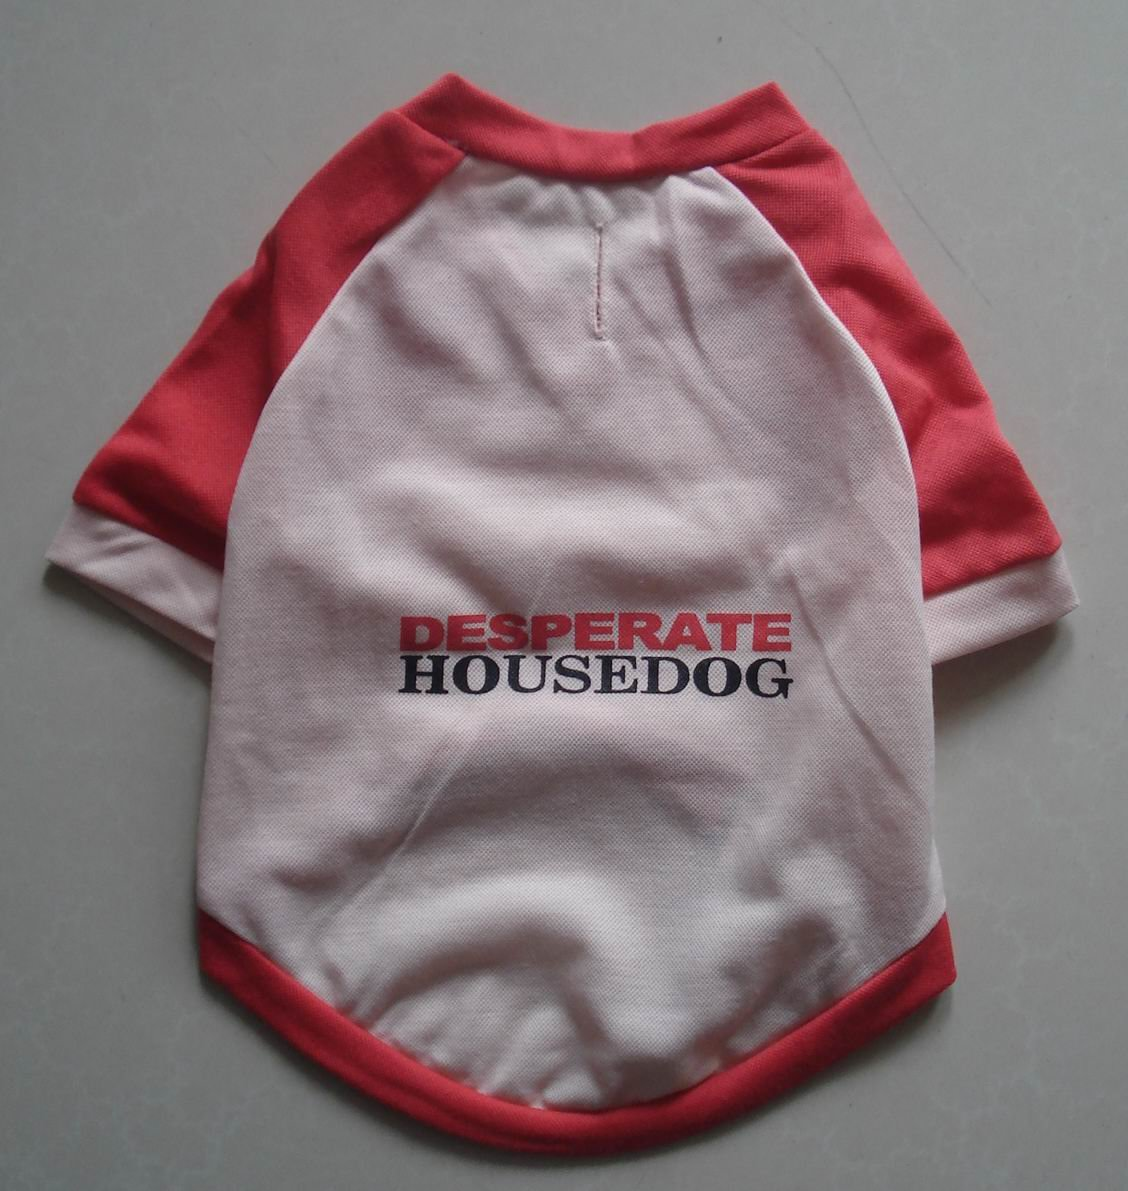 Stylish red T-Shirt - Desperate housedog